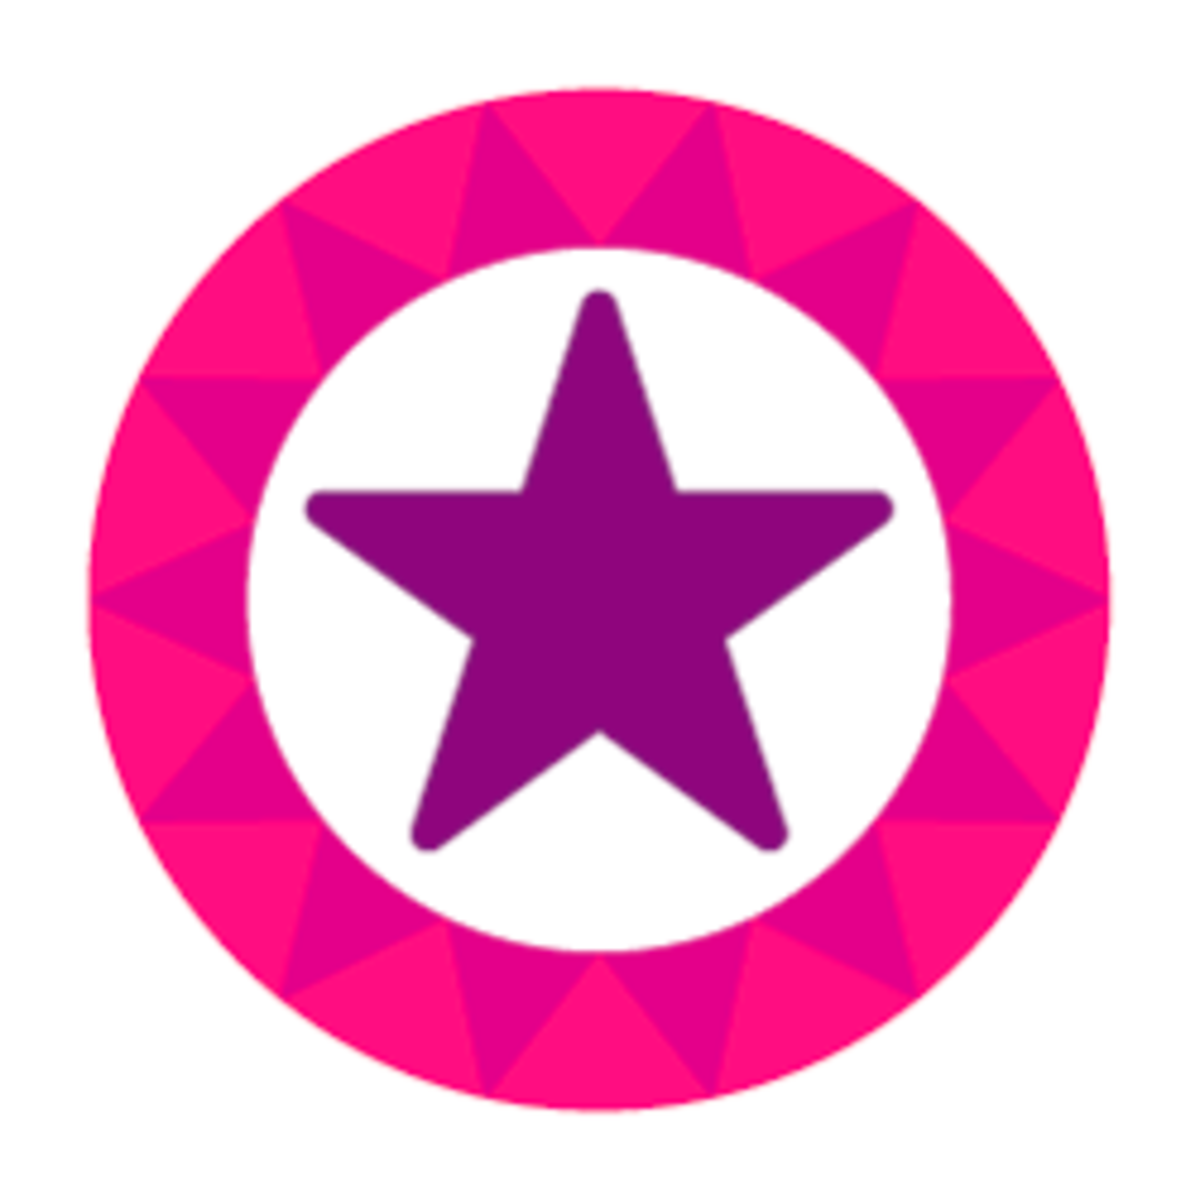 I won the PURPLE STAR AWARD!